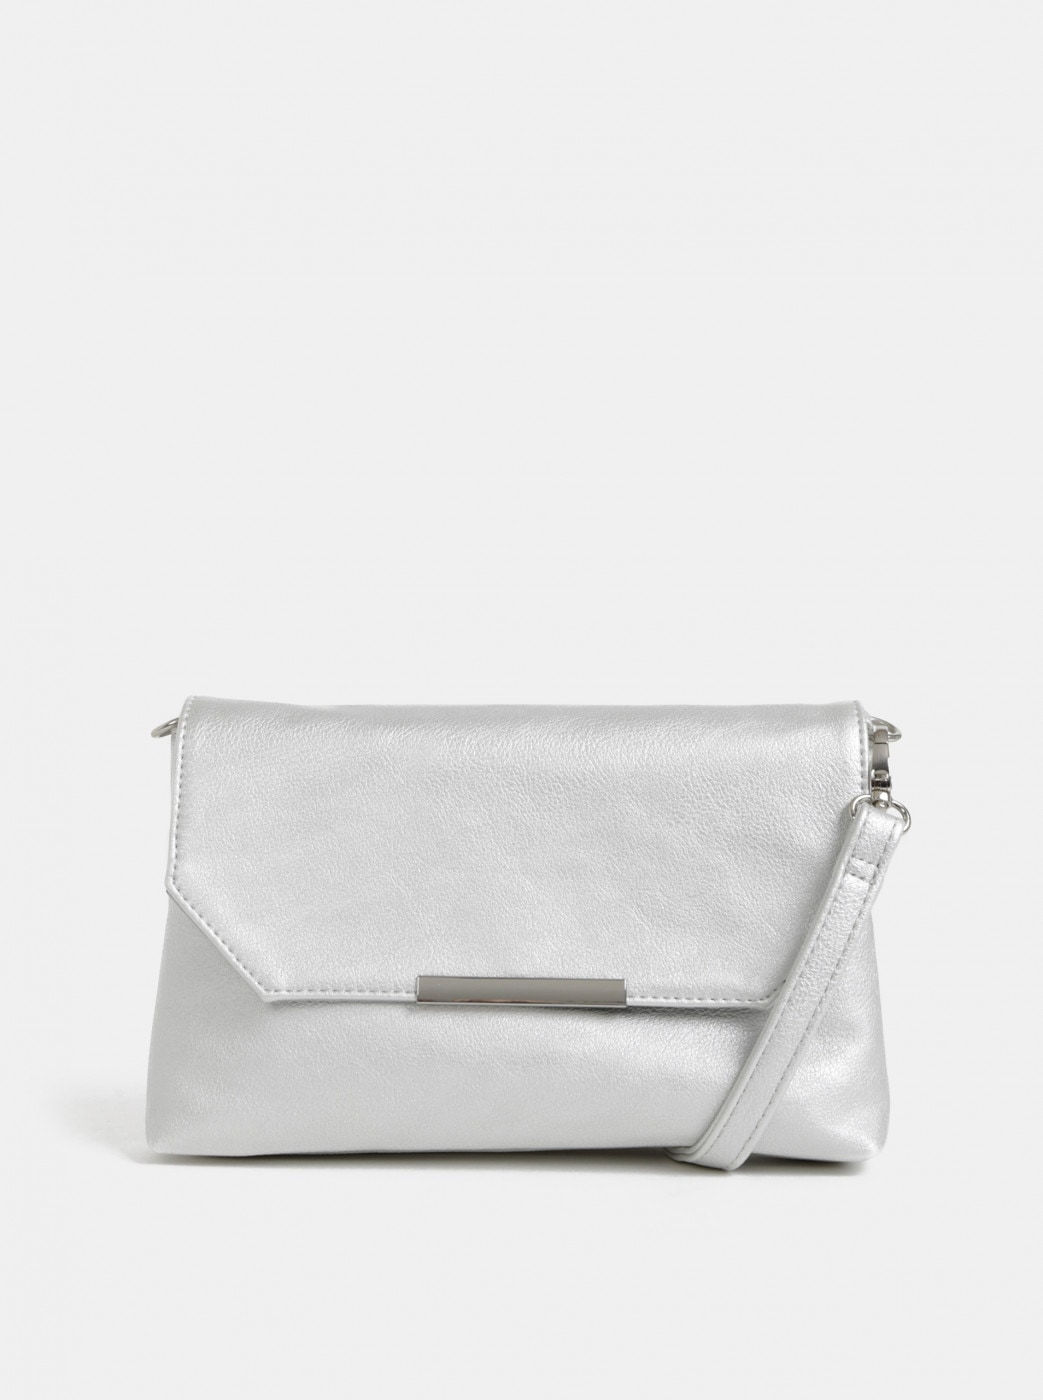 Crossbody Handbag in Silver Tom Tailor Denim Kenza